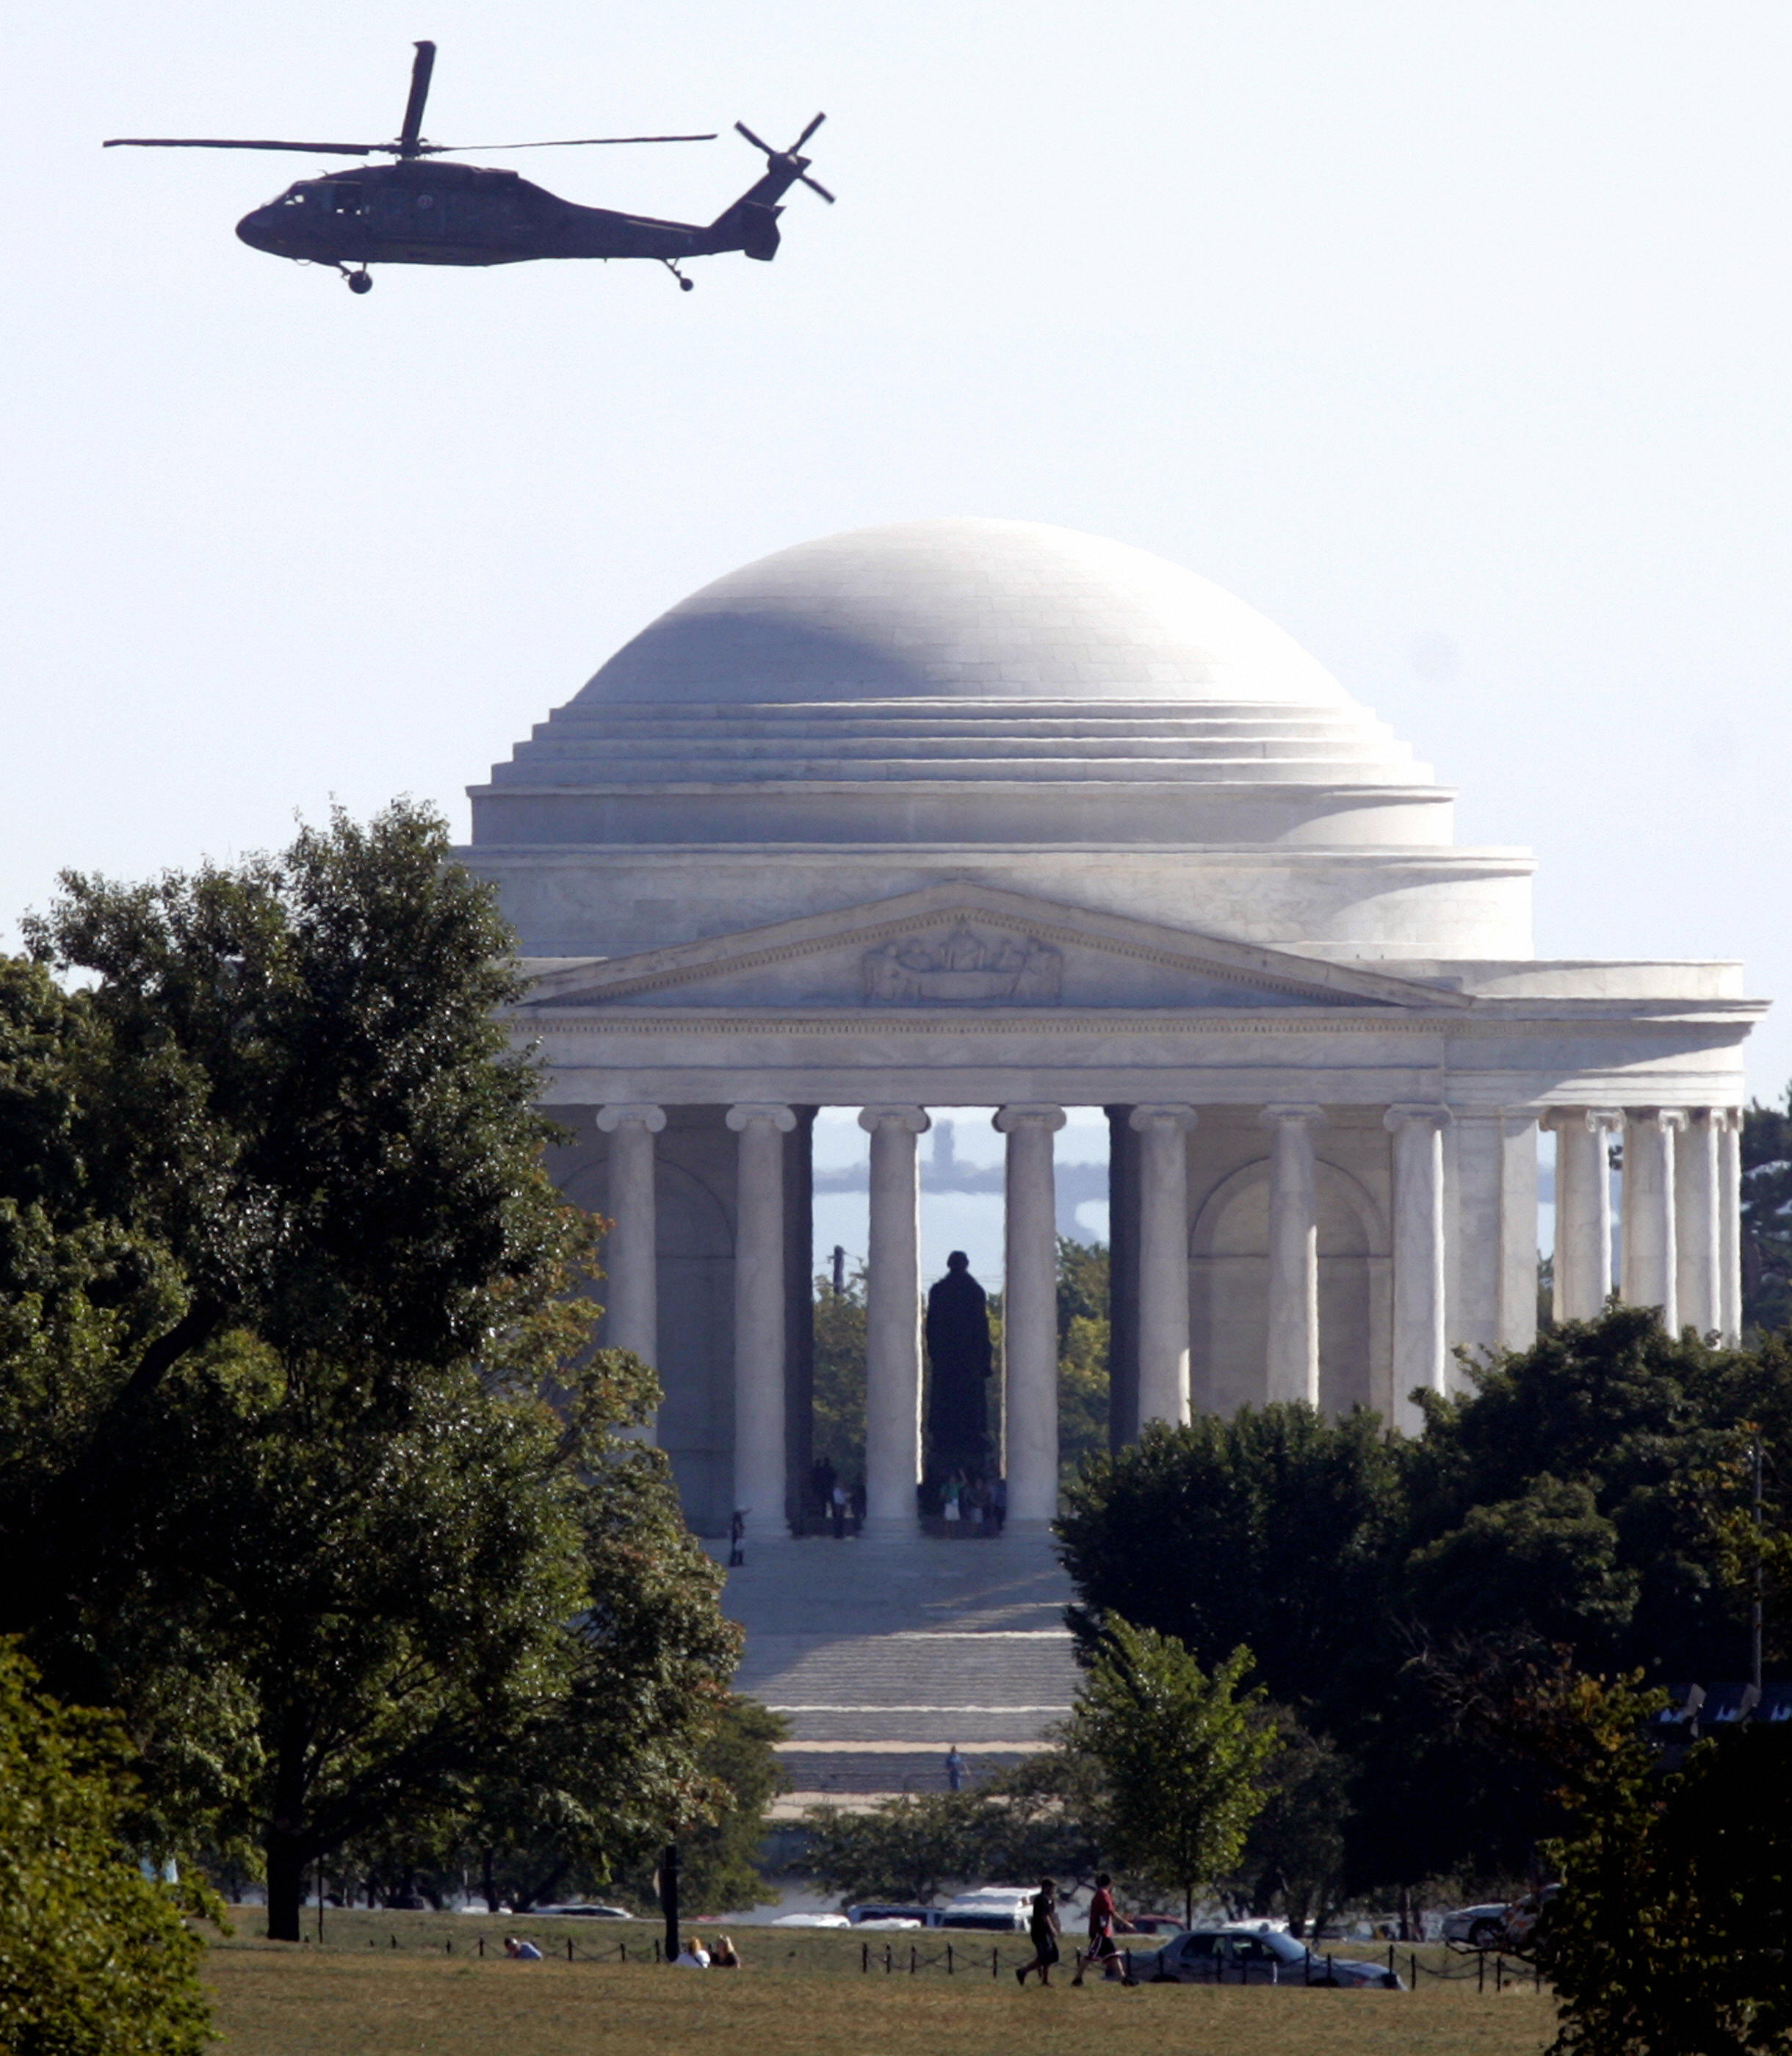 A Blackhawk helicopter flies past the Jefferson Memorial in Washington, DC, 21 September 2007. (SAUL LOEB/AFP/Getty Images)